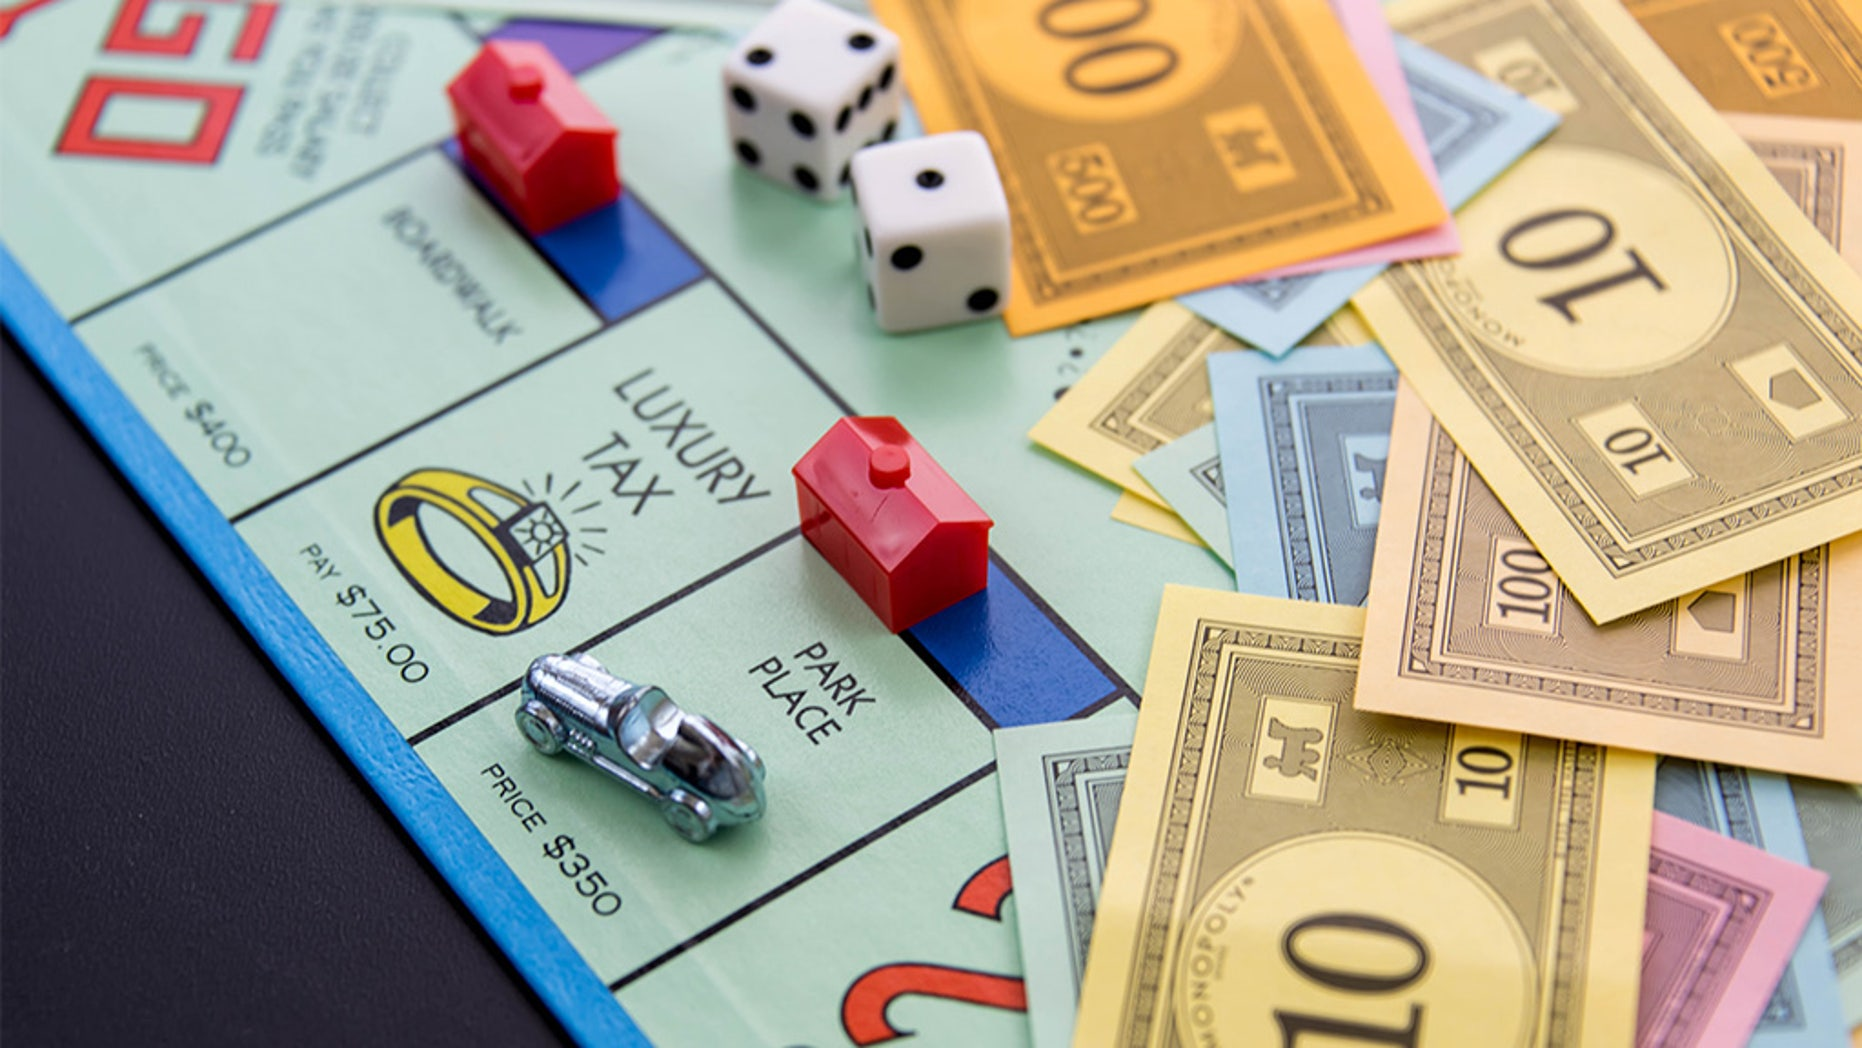 A family game night in Kansas seemingly went wrong when a violent argument broke out during a game of Monopoly, police said.